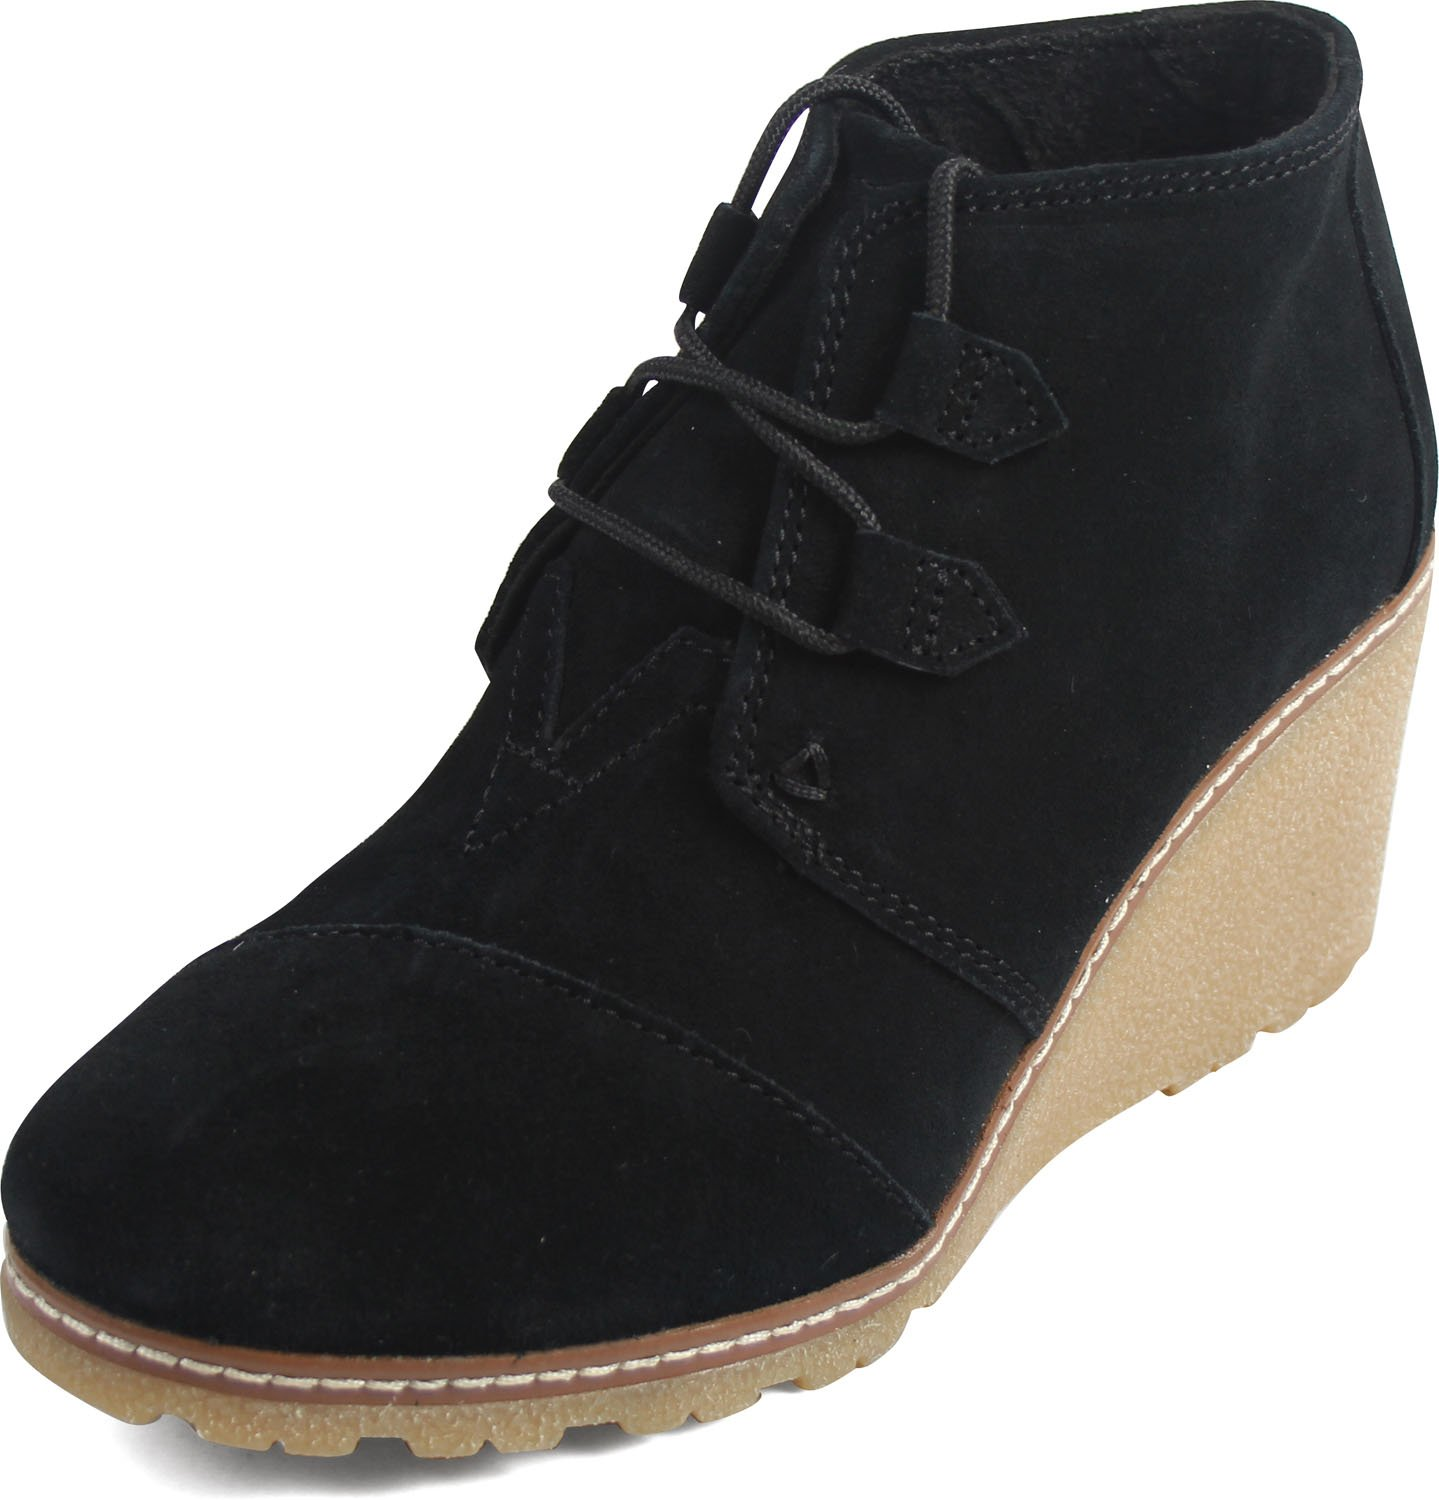 Toms Women's Desert Wedge Crepe Black Suede Shoes 5